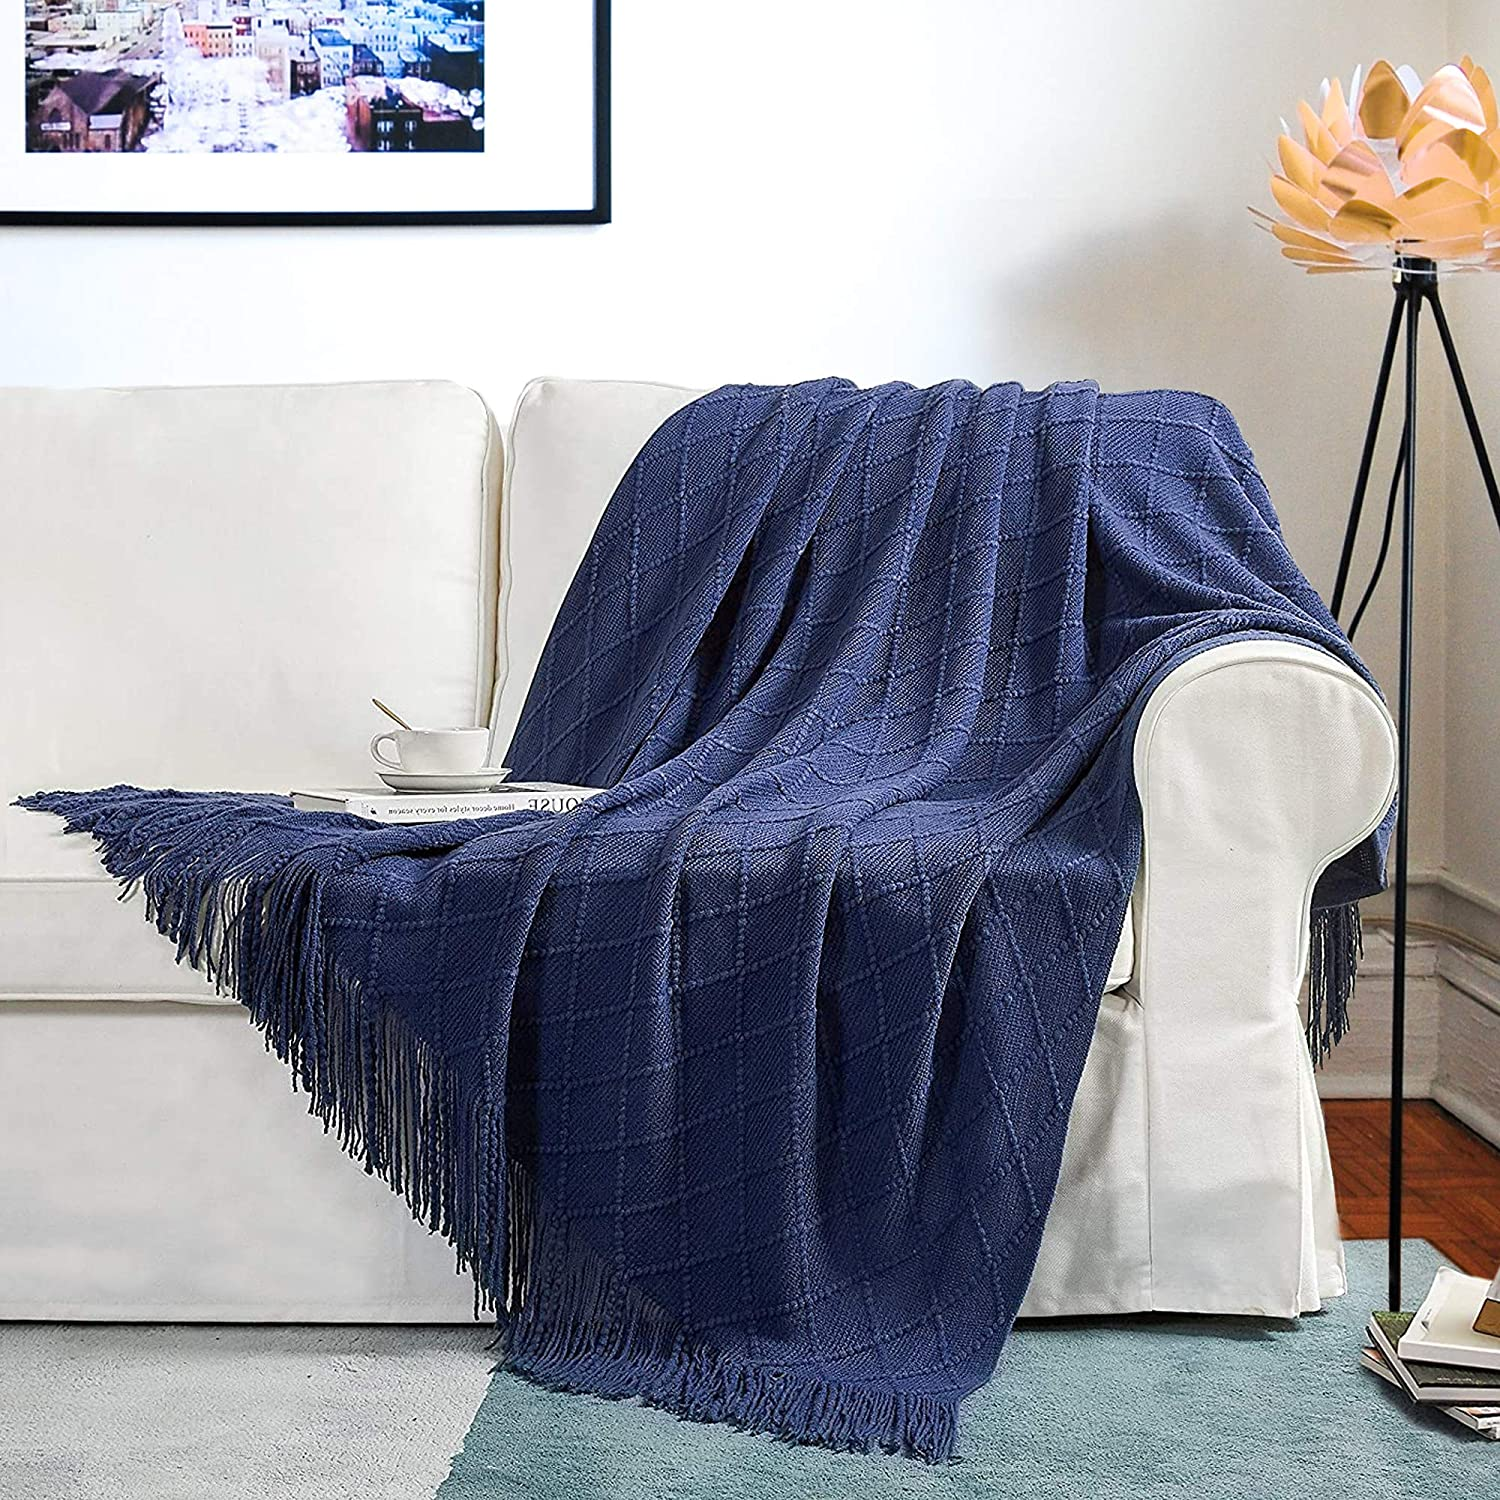 JS HOME Acrylic Fabric Knit Throw Blanket, 50×60 Inch, Ultra Soft, Cozy, Warm Lightweight Blanket with Decorative Tassels for Couch, Sofa, Bed, Travel, Office, Indigo Blue